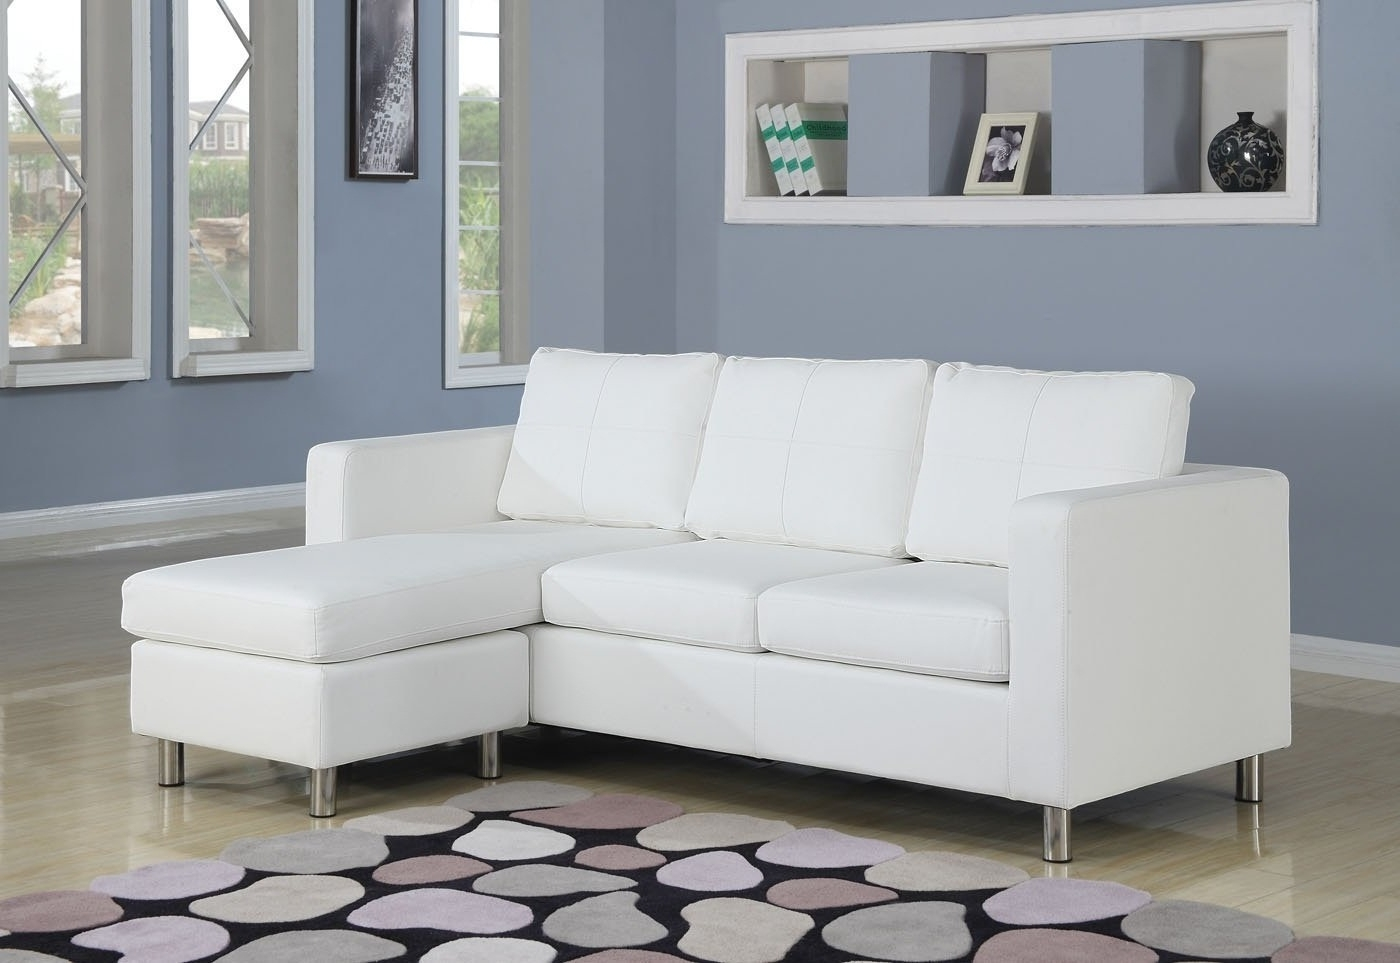 Mini Sectional Sofas For Recent Sofa : Small Reclining Sectional Sofa Small Double Chaise Sofa (View 7 of 20)